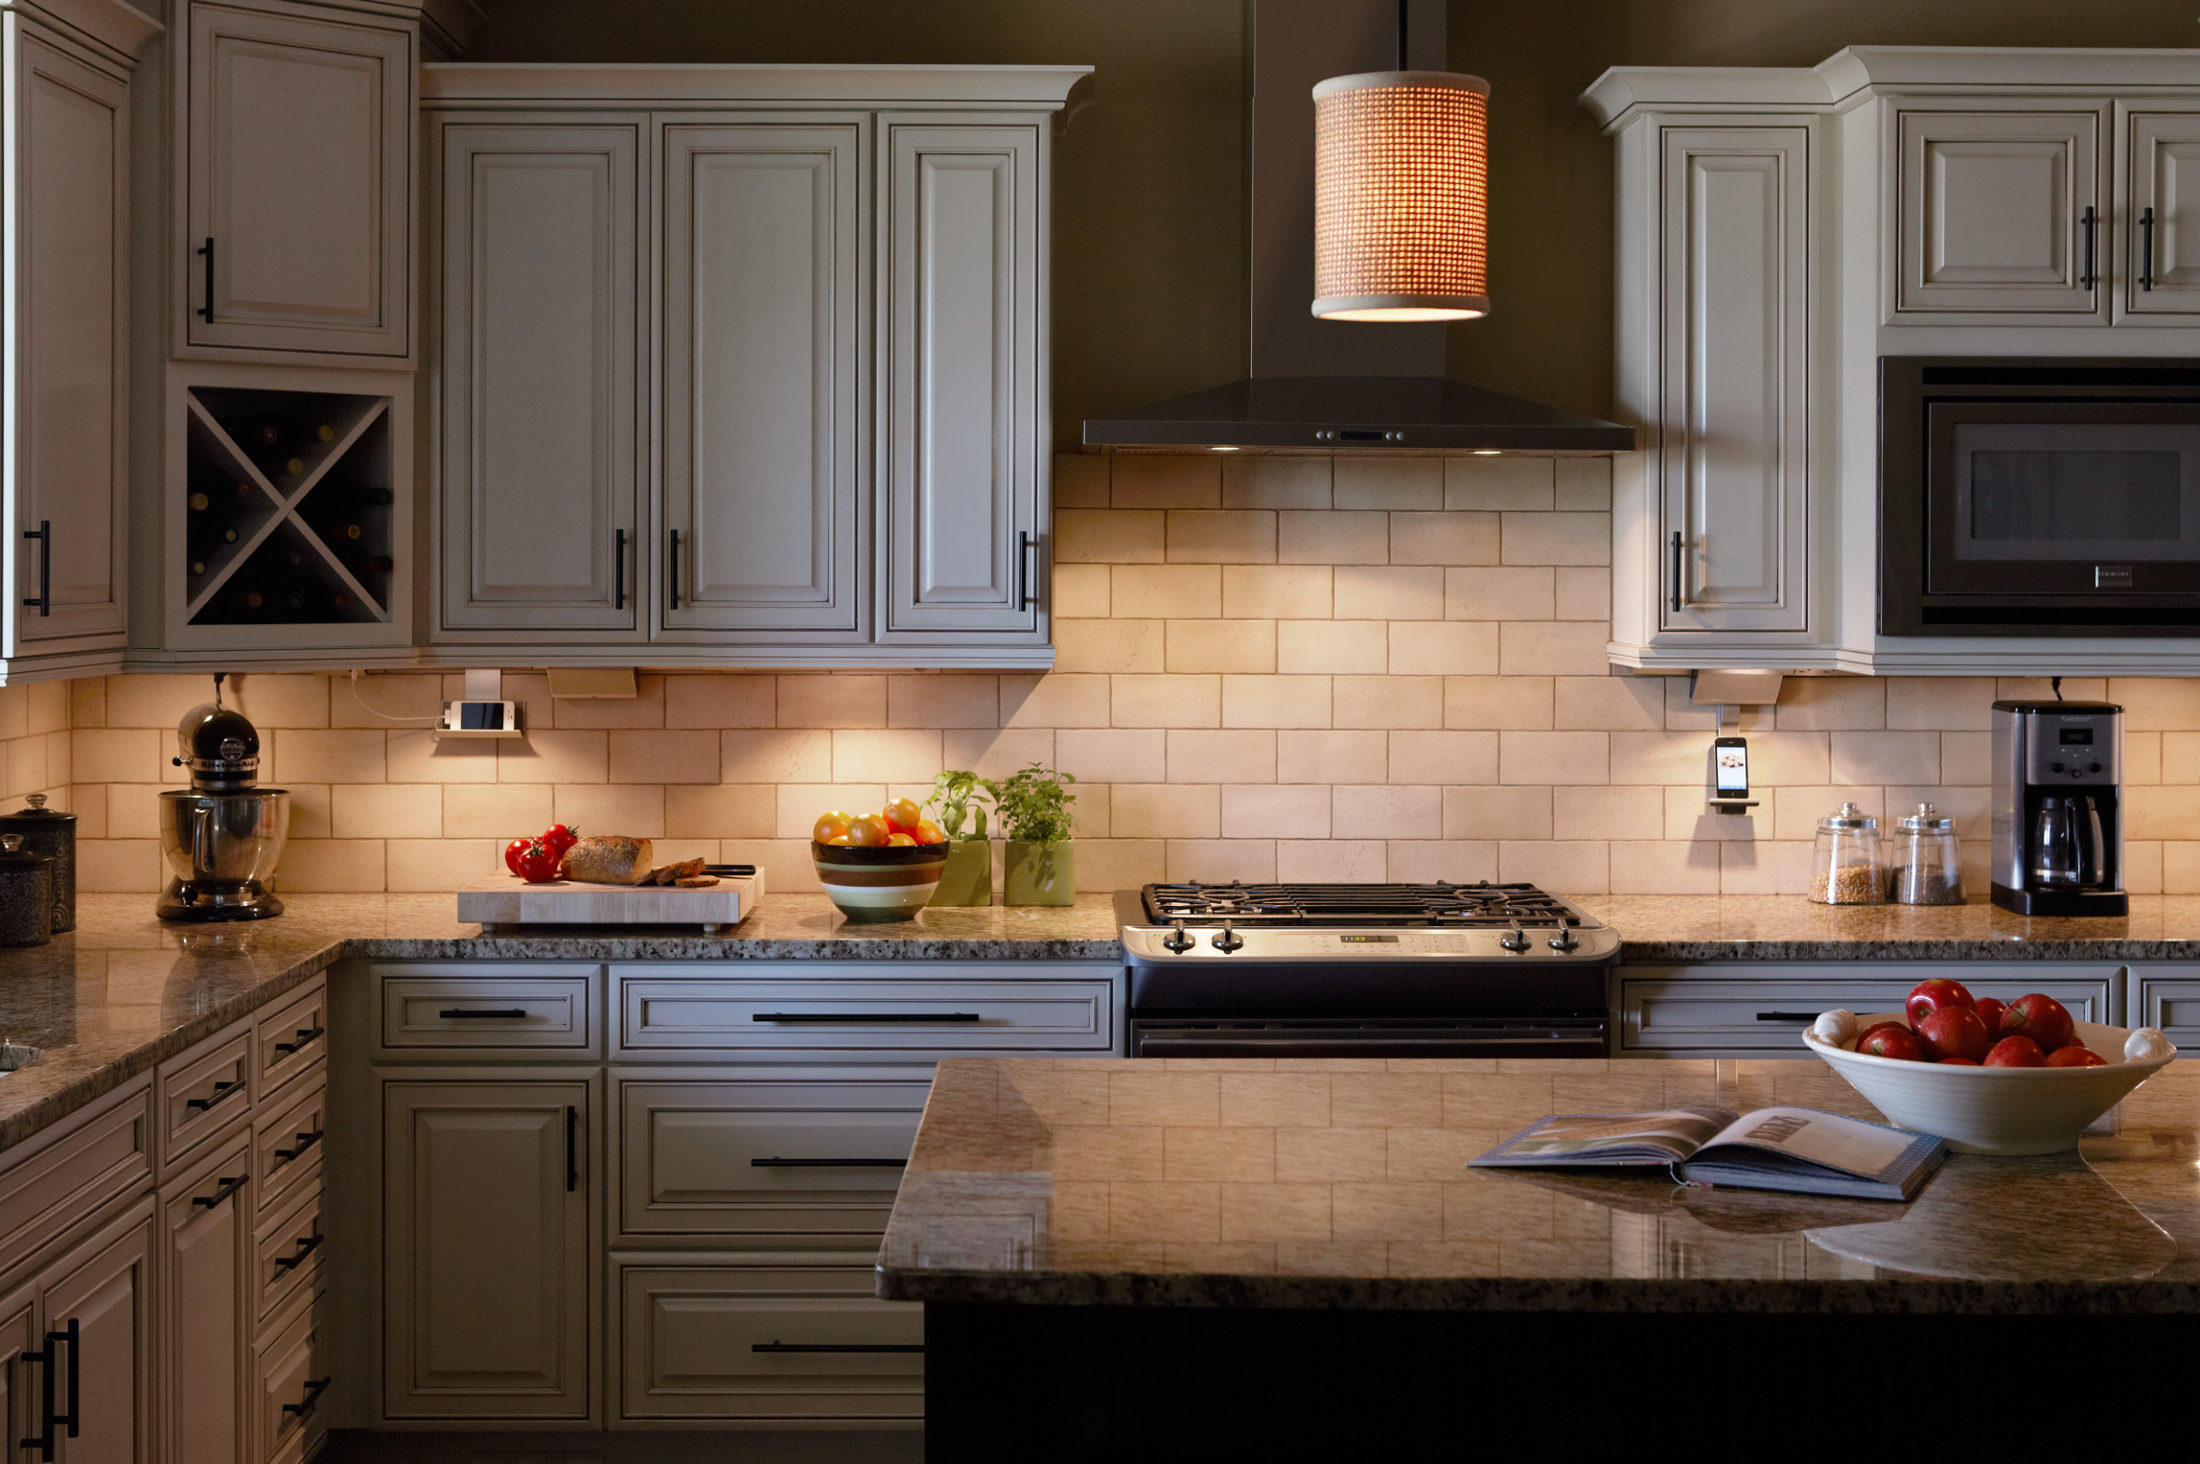 Led Lights Kitchen Led Kitchen Cabinet Lighting In Stock At Schillings